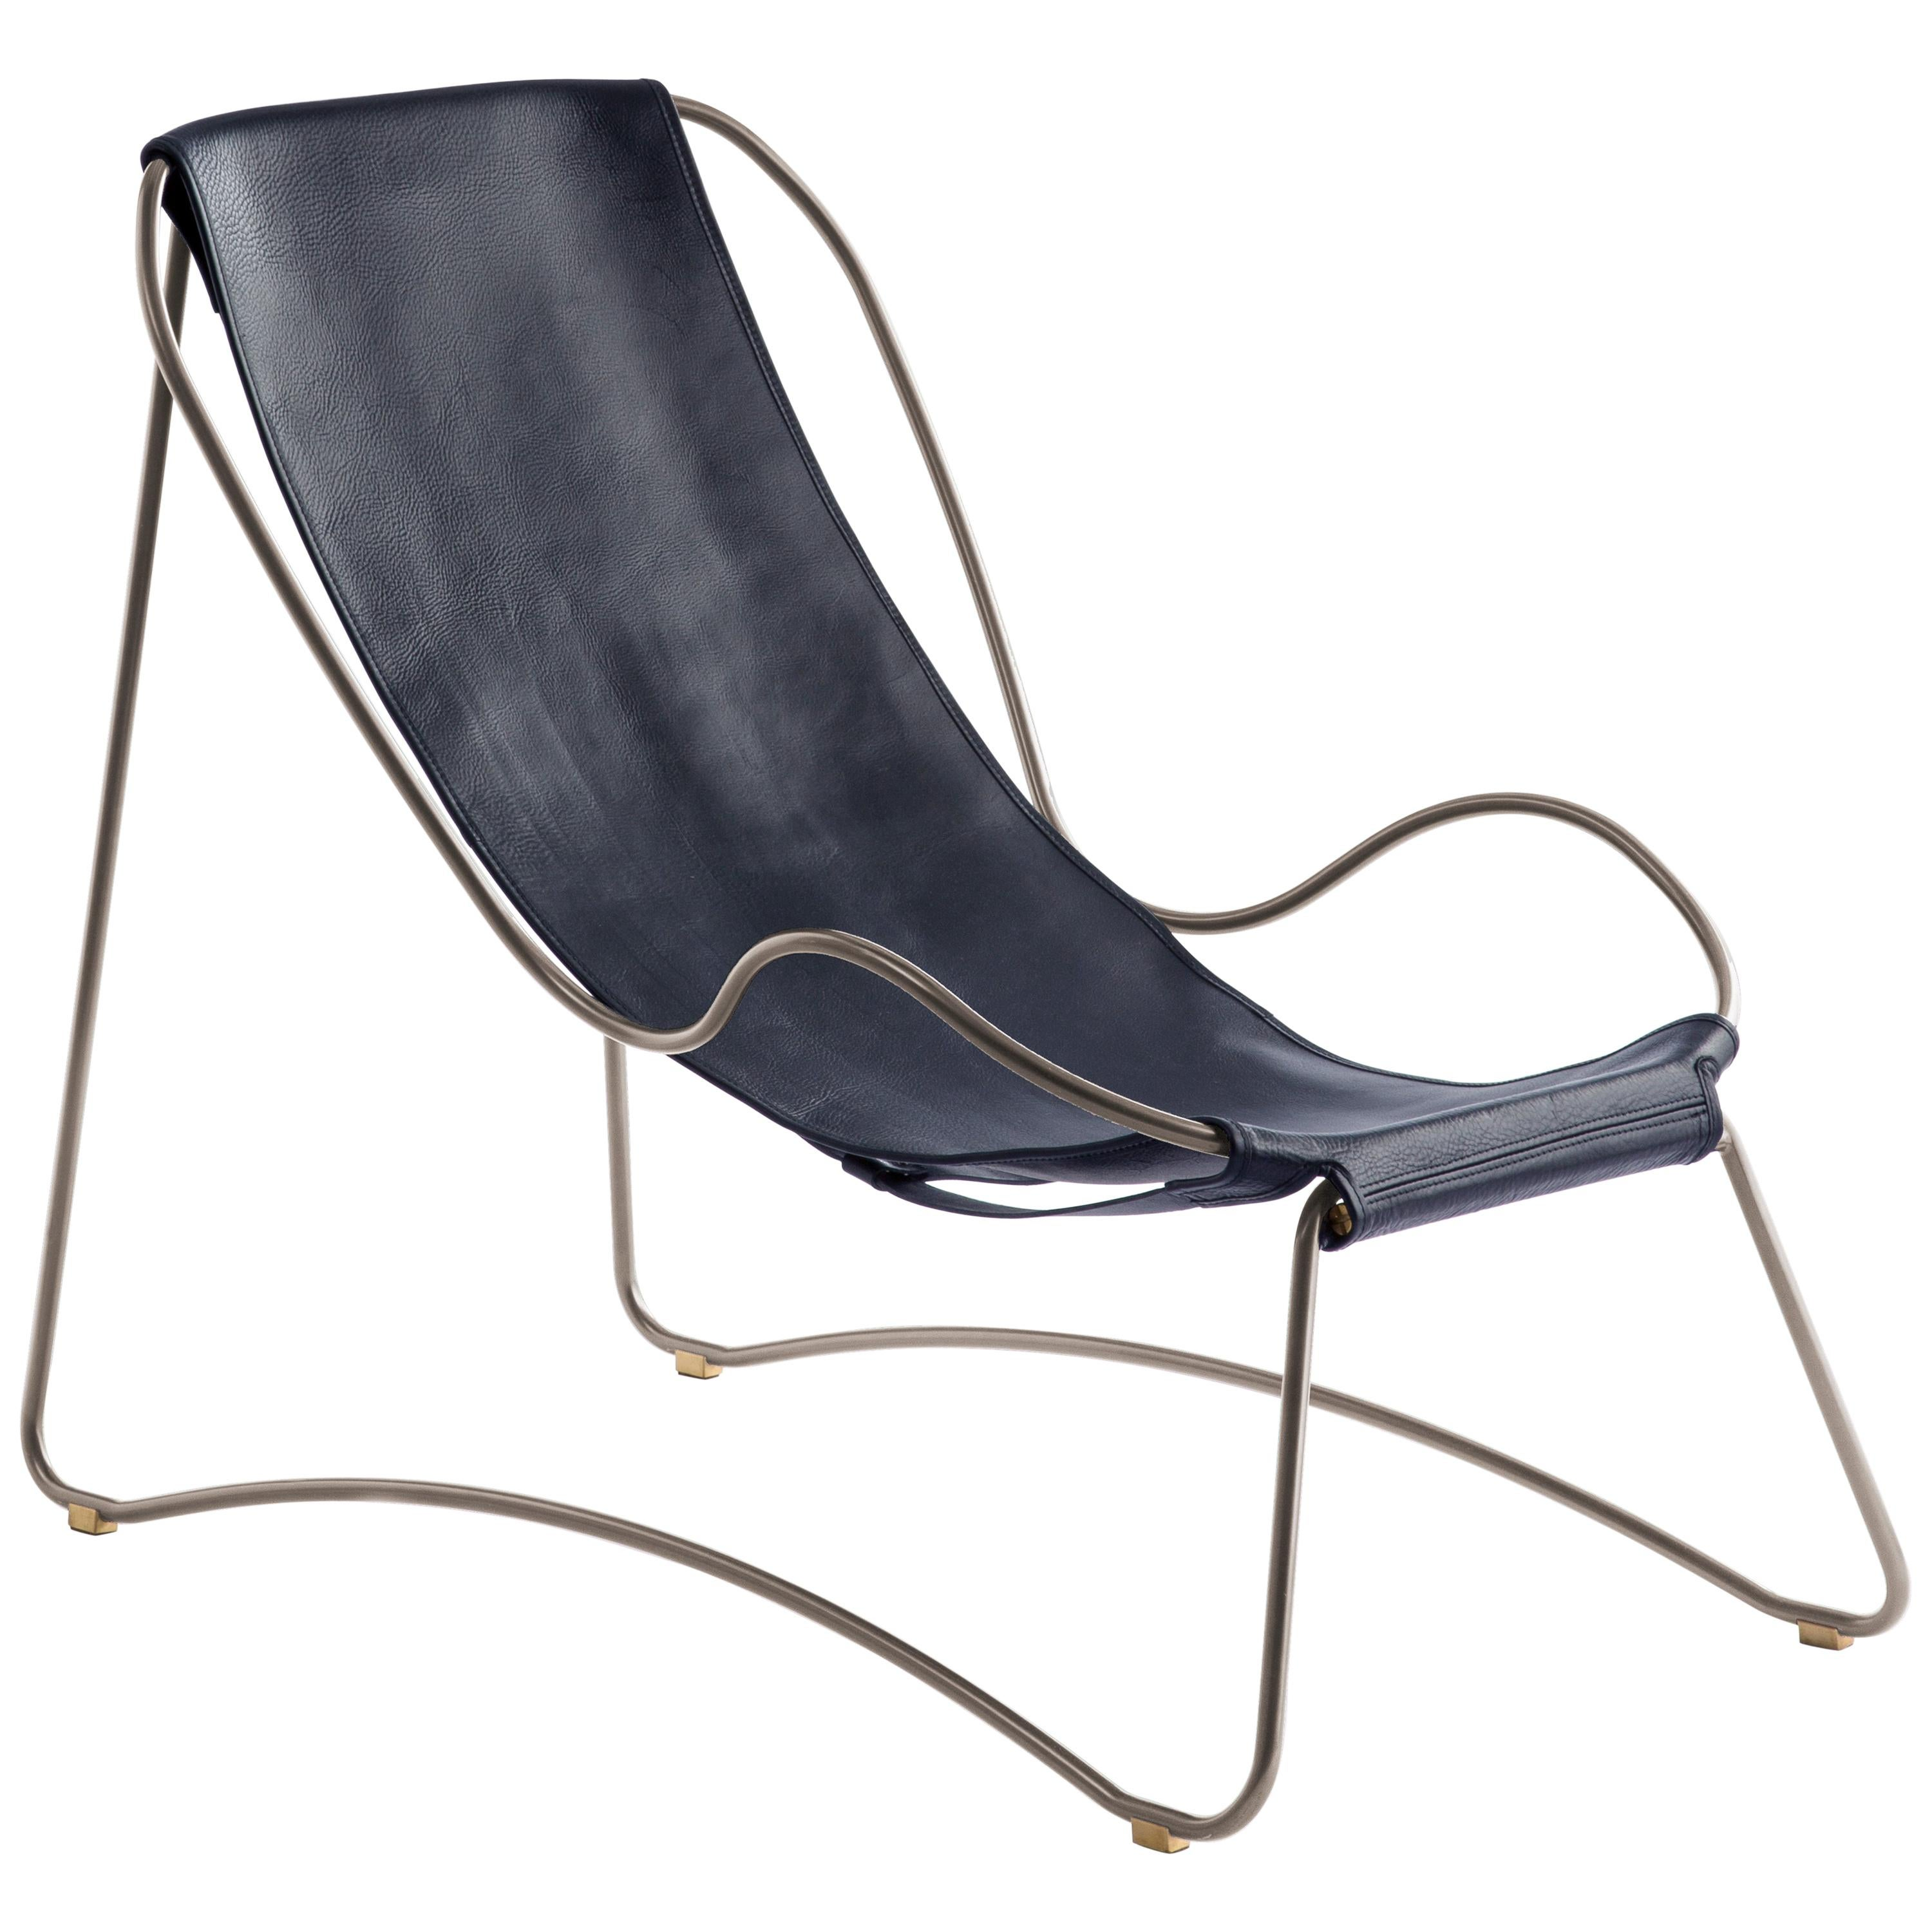 Jover + Valls Chaise Longues